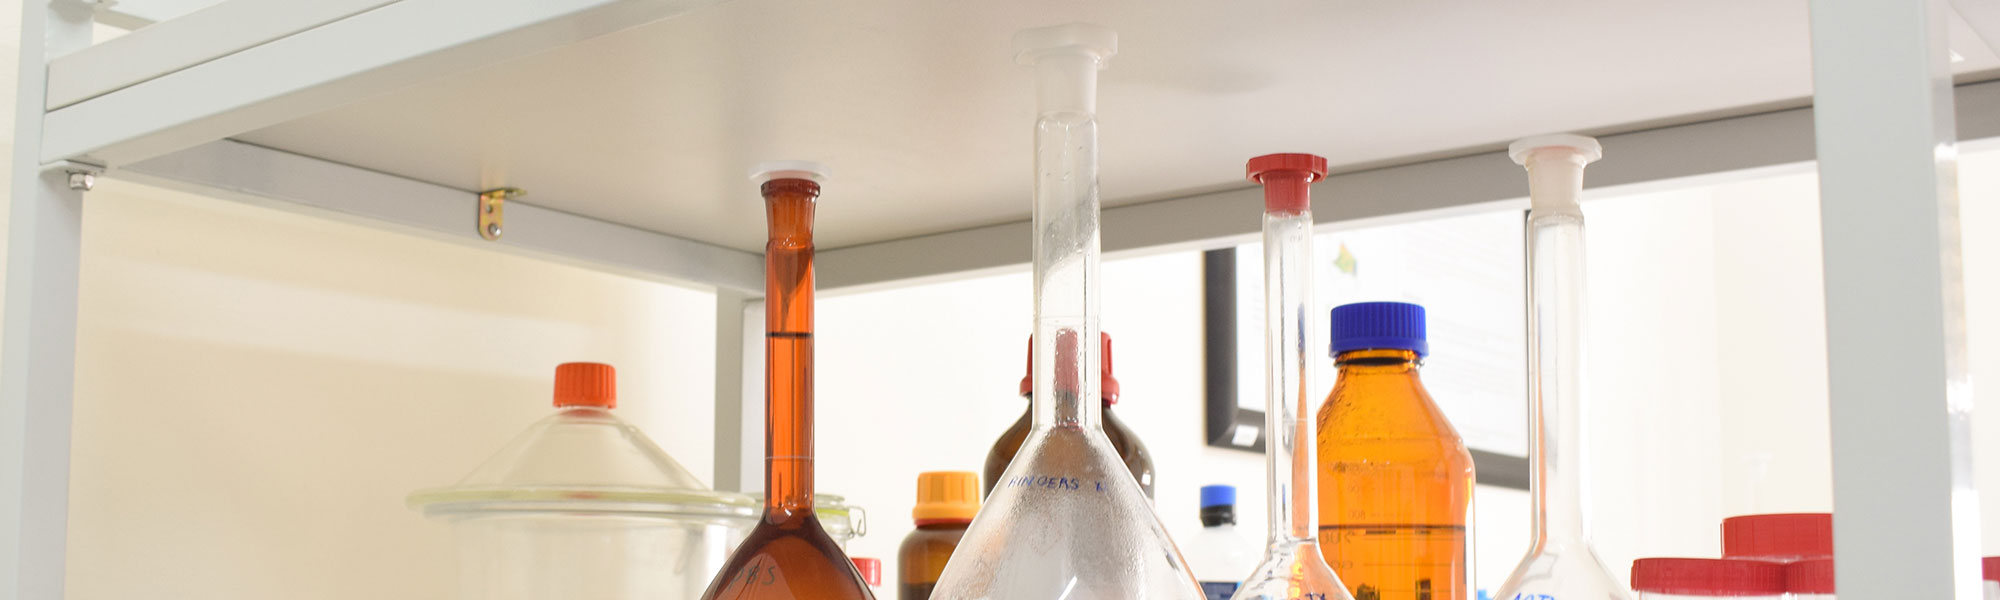 Flasks in lab